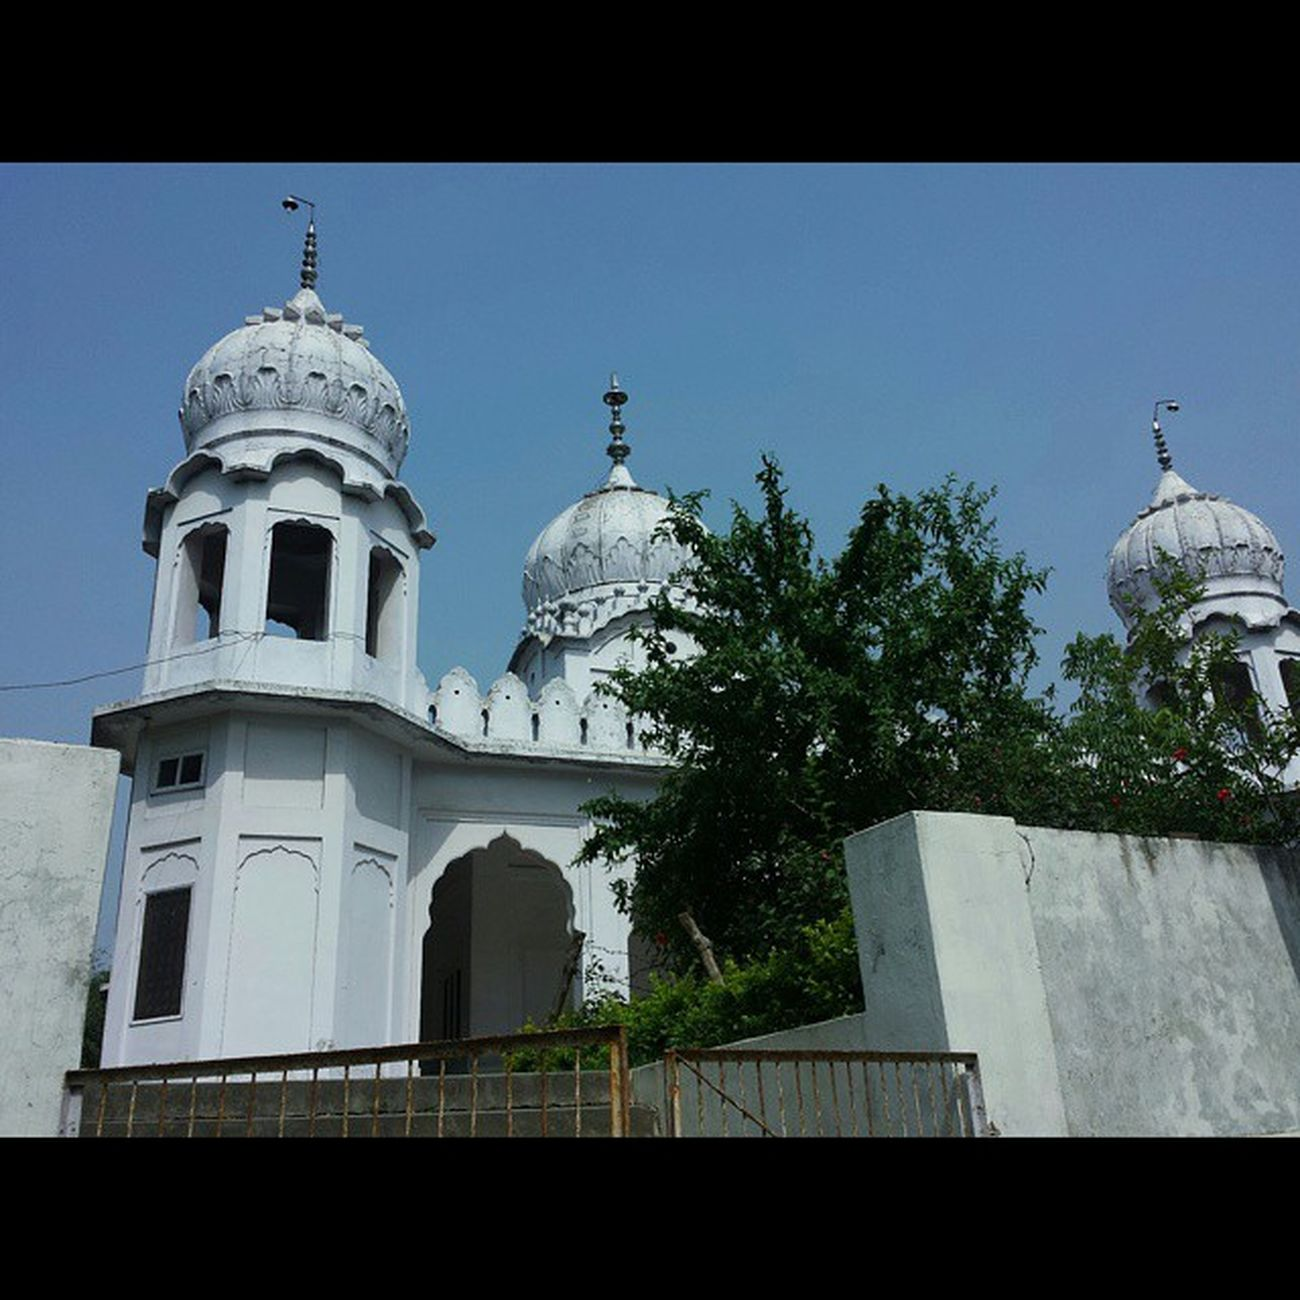 Gurdwara at ANANDPURSAHIB Punjab India setlife doclife Sikh sikhlife